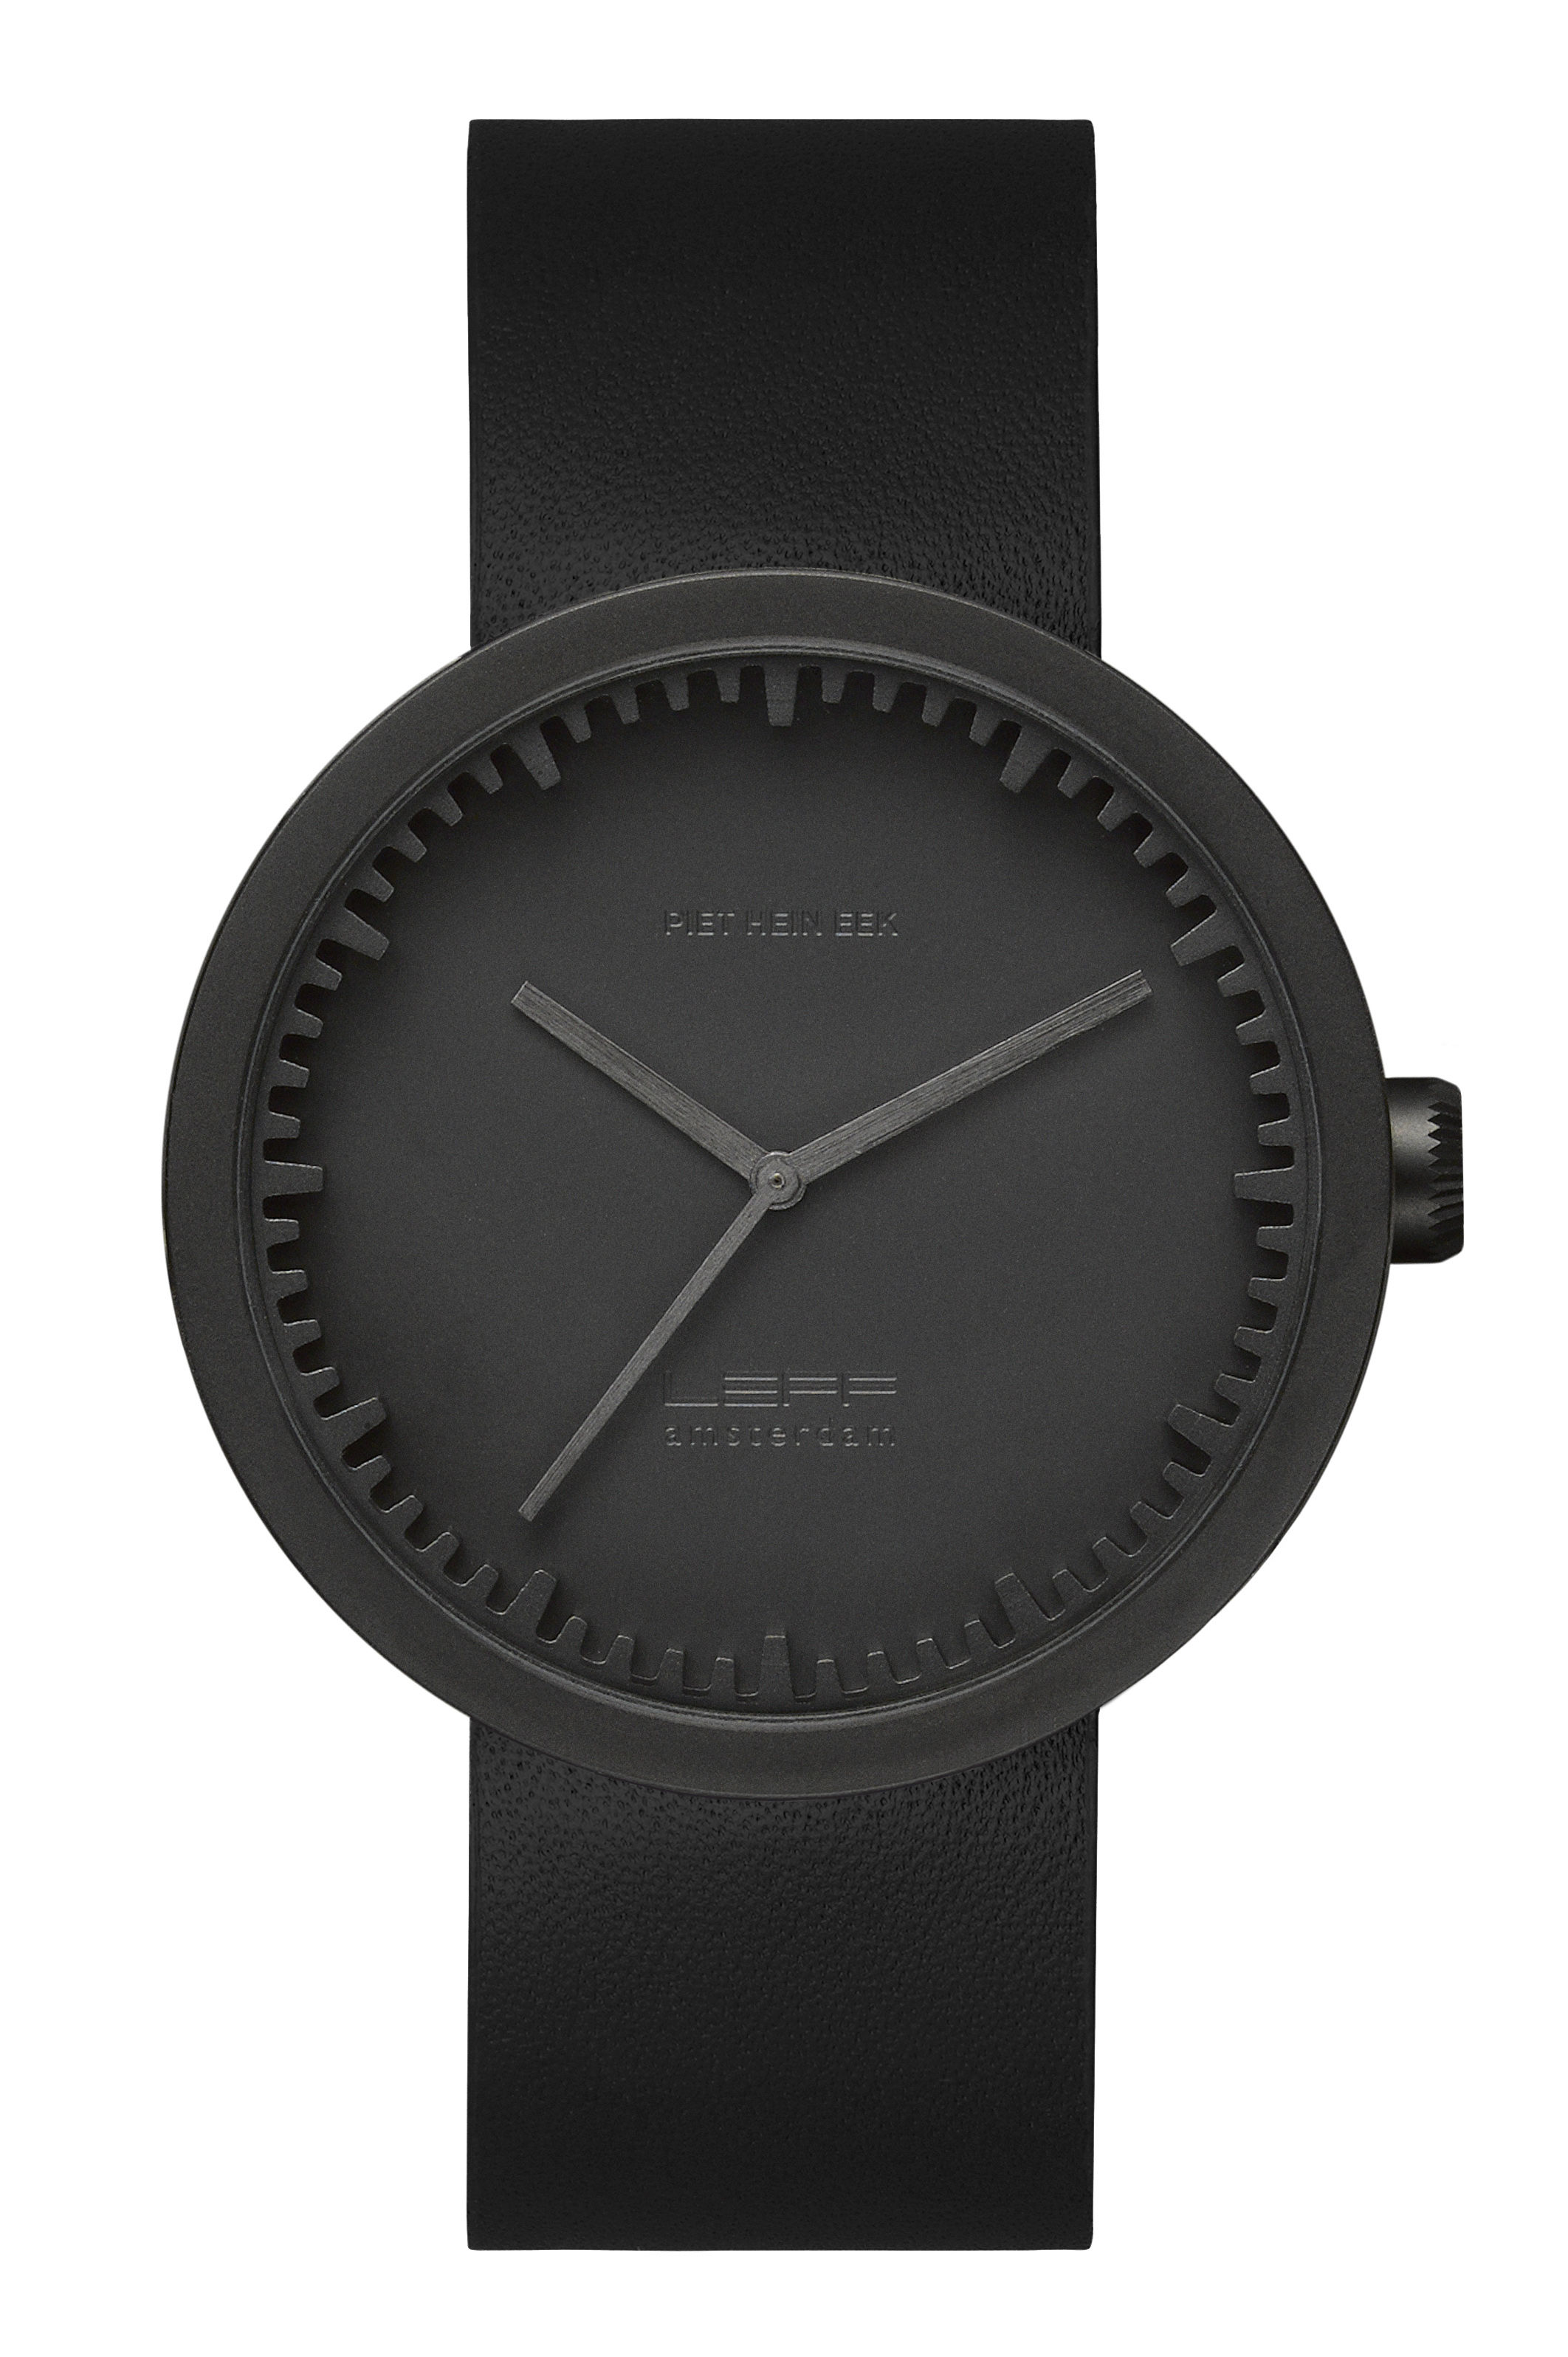 Accessories - Watches - D42 Watch - Leather wristband by LEFF amsterdam - Matt balck, black - 316L brushed stainless steel, Glass, Leather